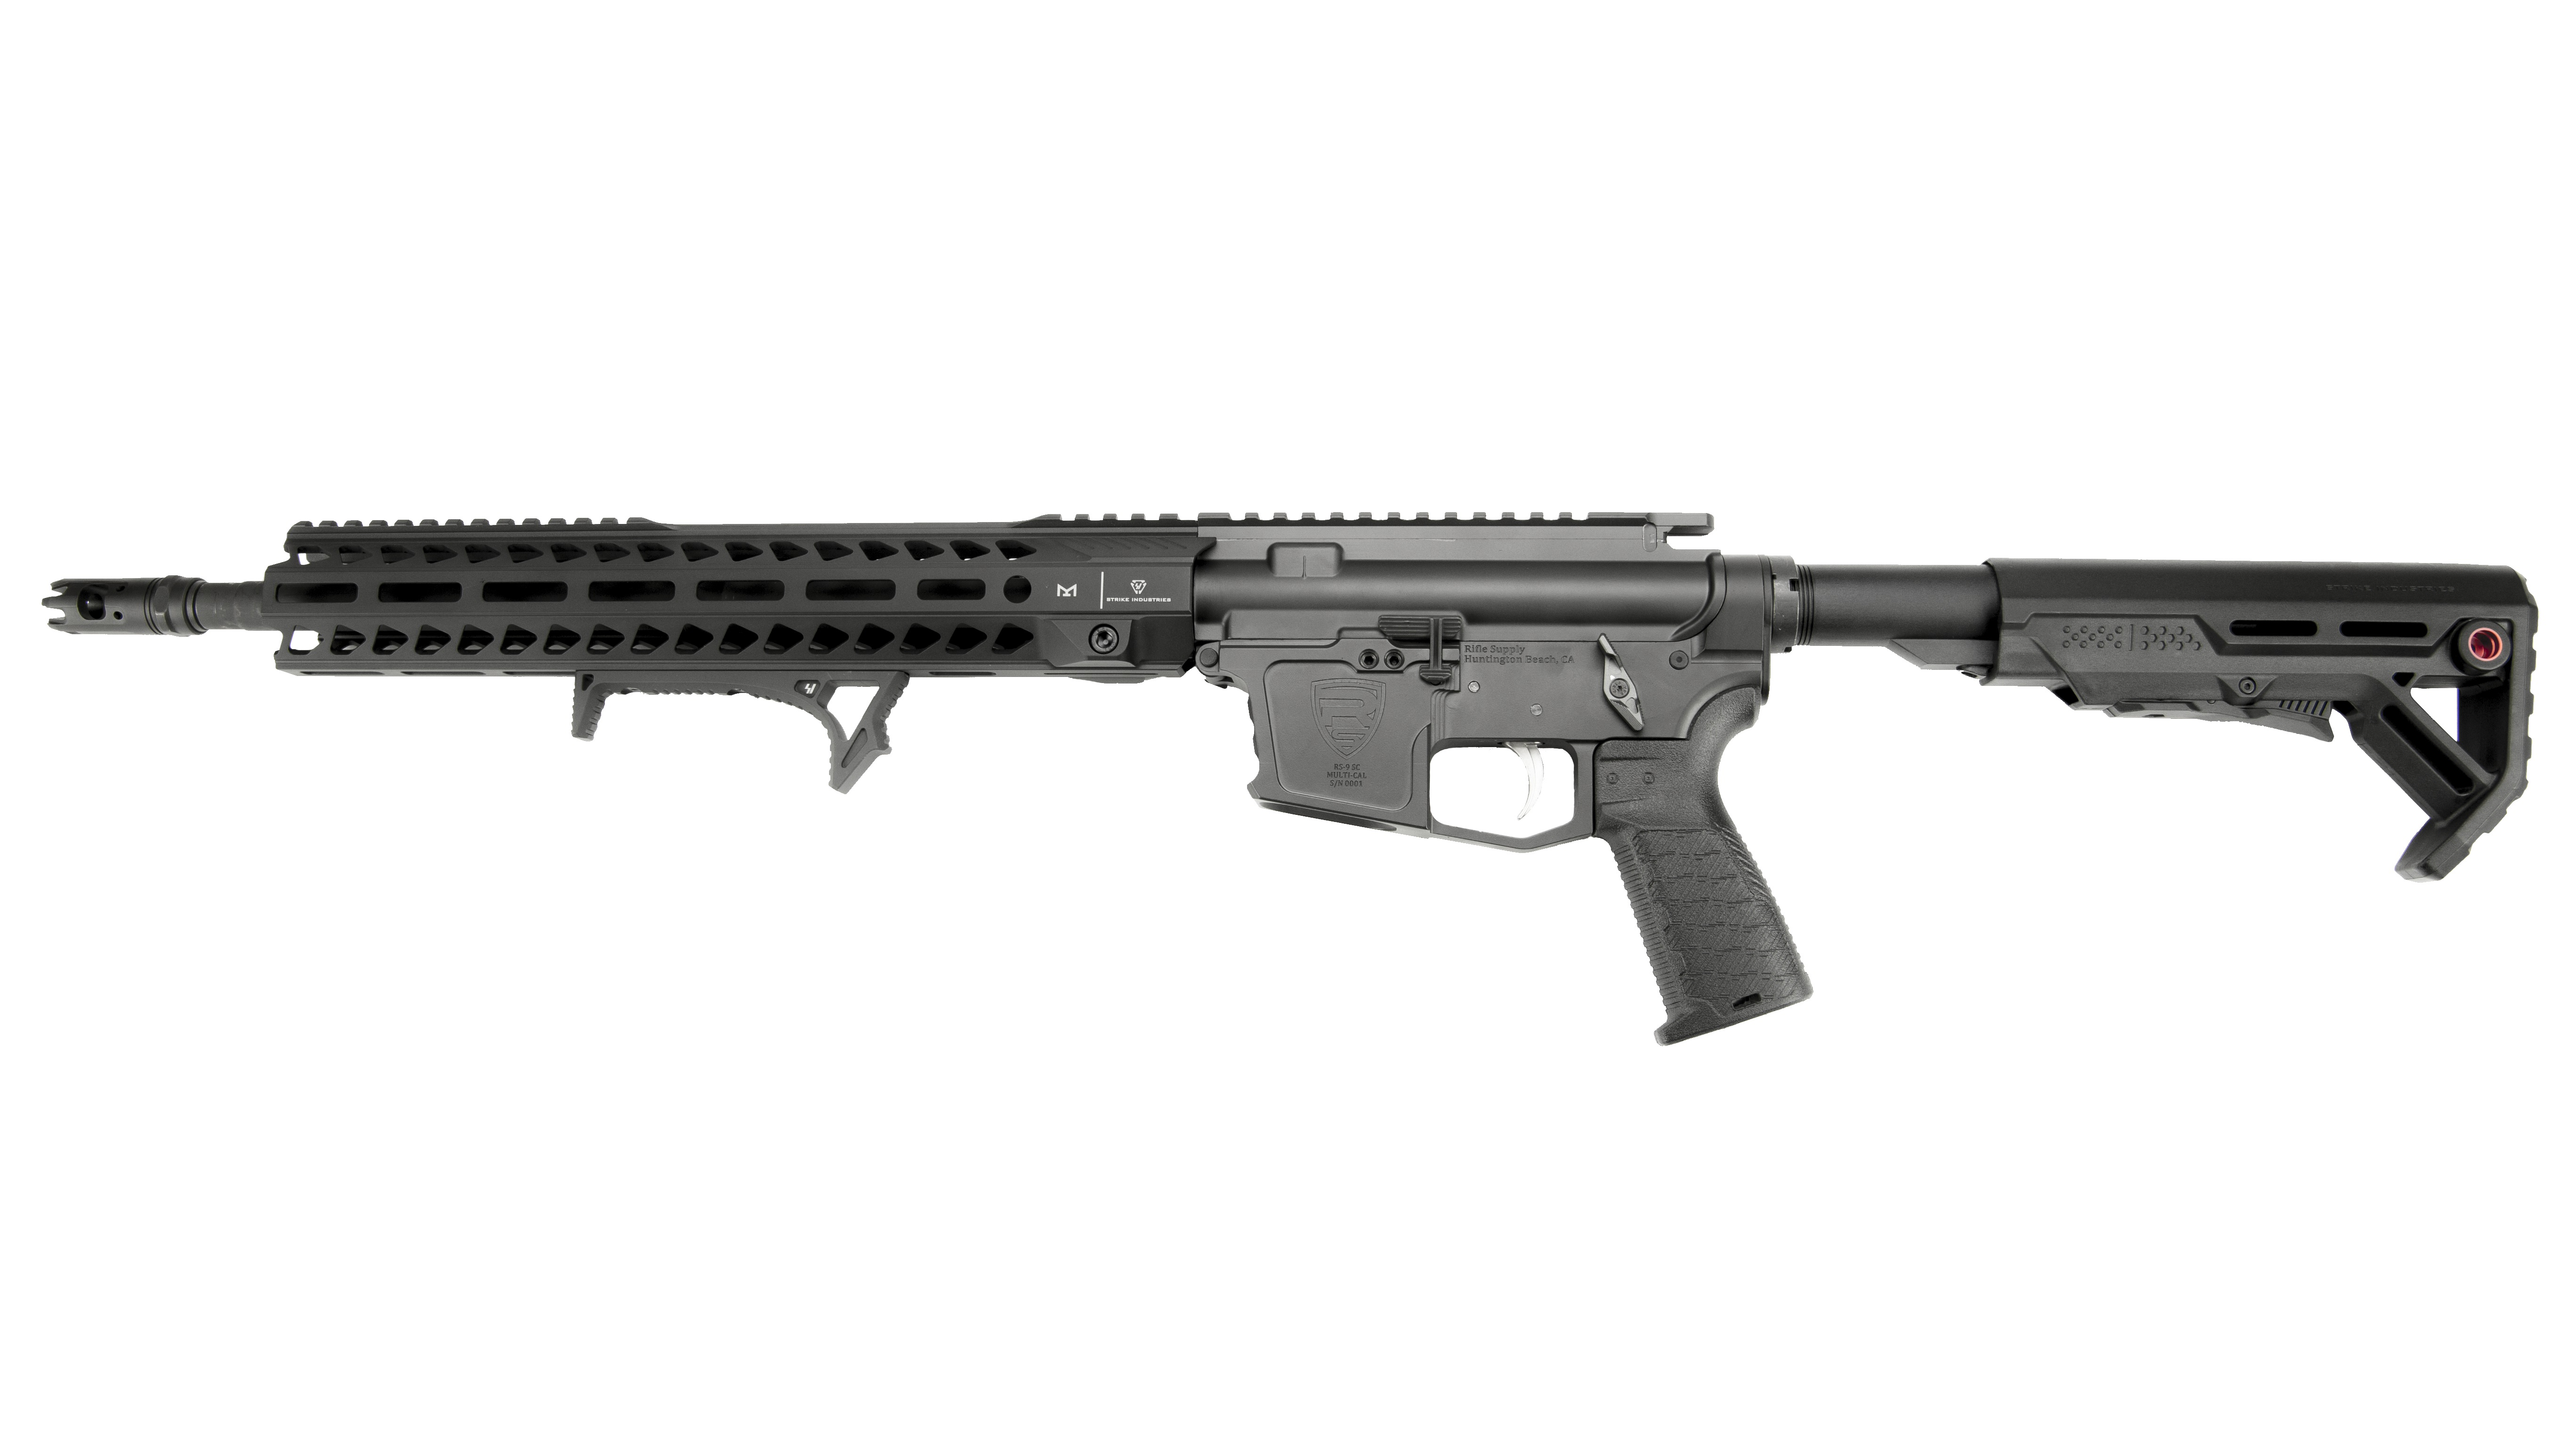 Rifle Supply RS9-STC 9mm Glock Dedicated Carbine Rifle - Enhanced